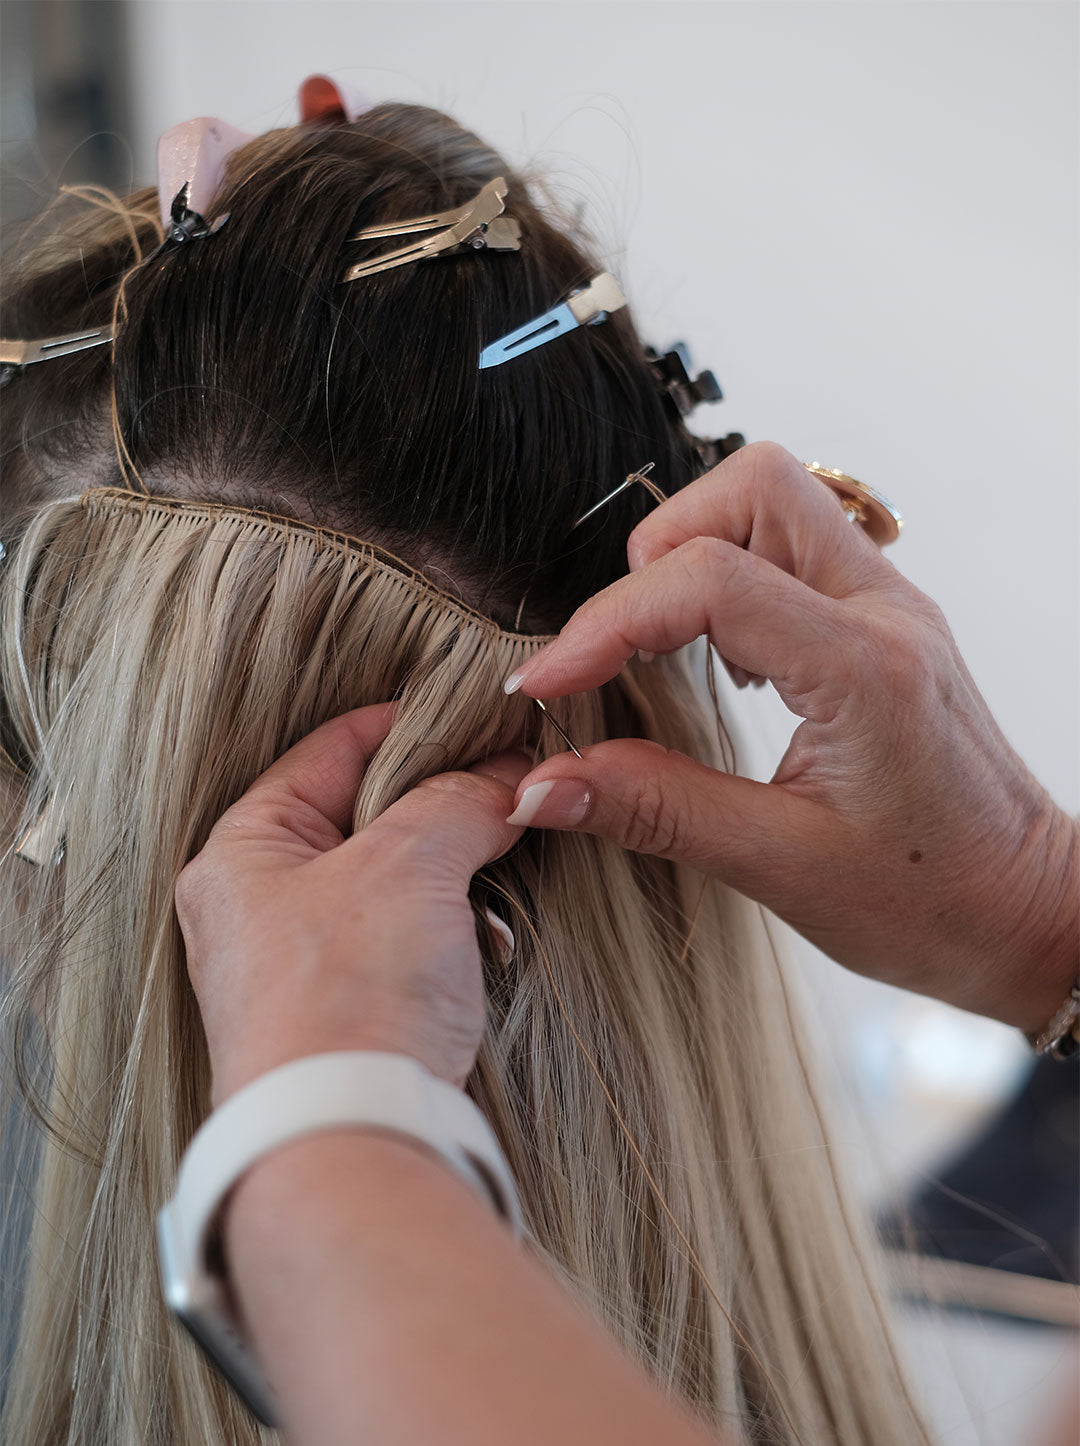 Hairlaya hand-tied online course